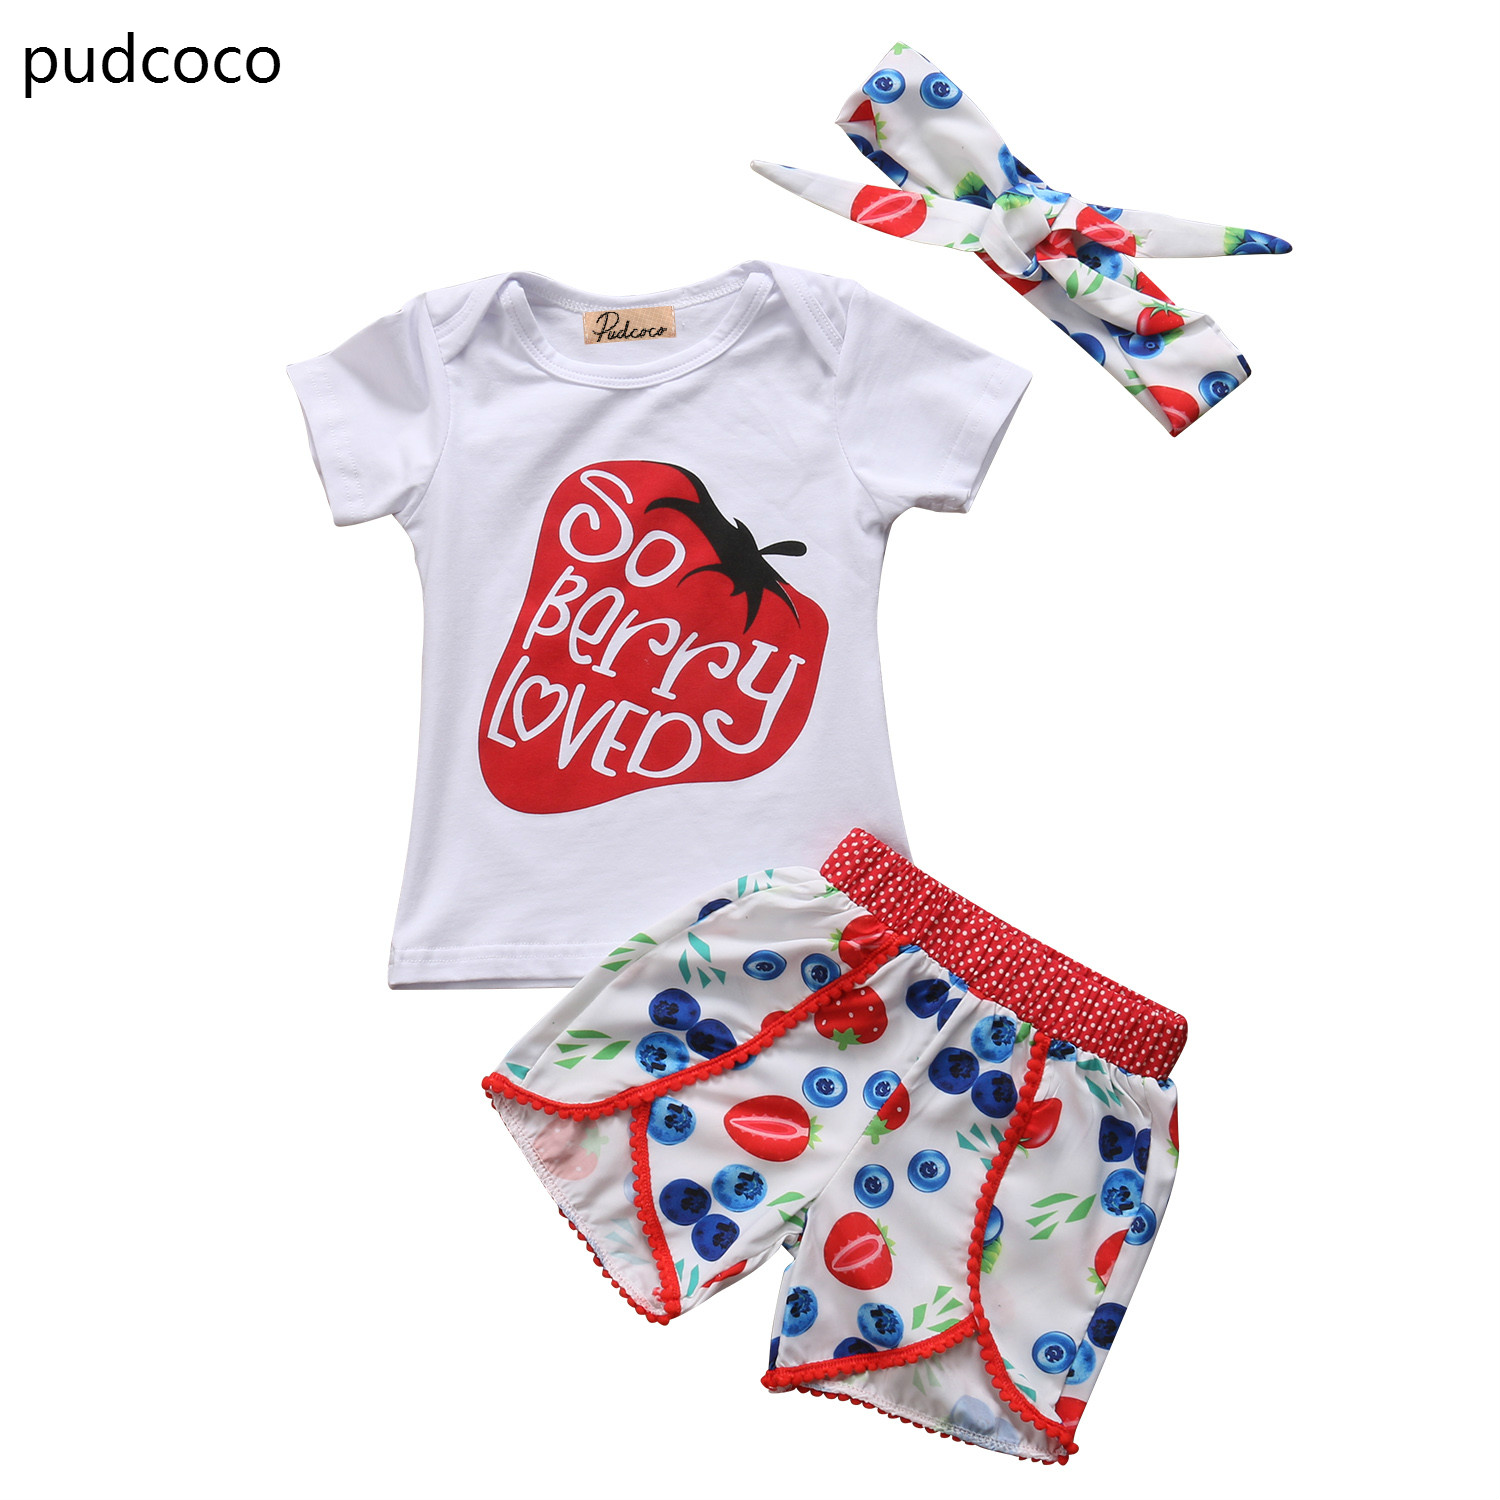 Cute Strawberry Clothes Toddler Kids Baby Girls Outfits Tops T shirt+Print Shorts Bottom Headband Clothes Set Summer Clothing cute newborn baby girl bodysuit headband outfits floral sunsuit clothes flower infnat toddler girls summer 3pcs set playsuit